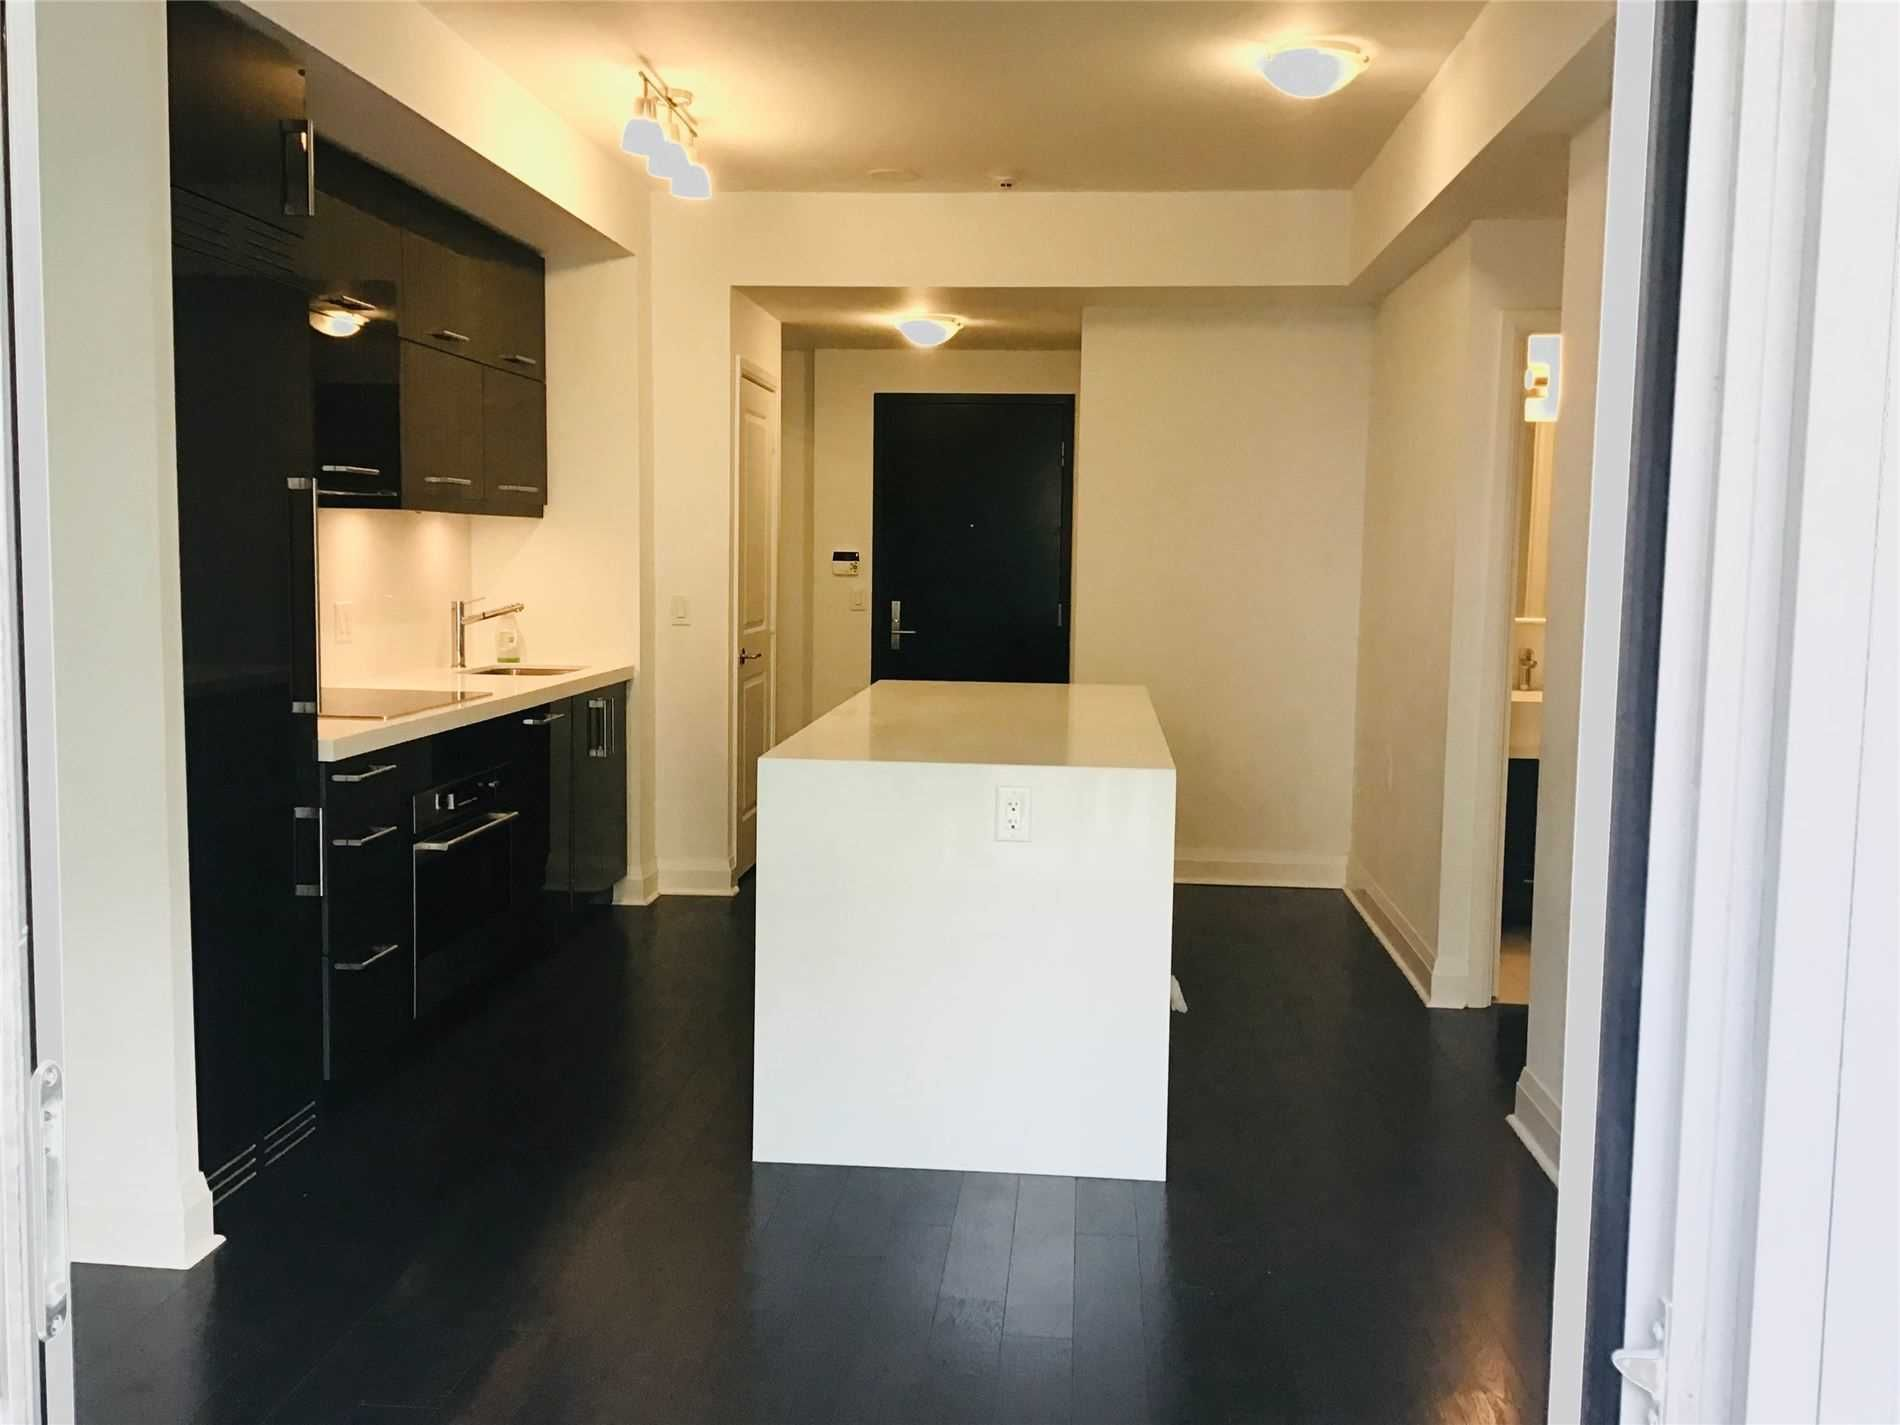 1080 Bay St, unit 1101 for rent in Toronto - image #2